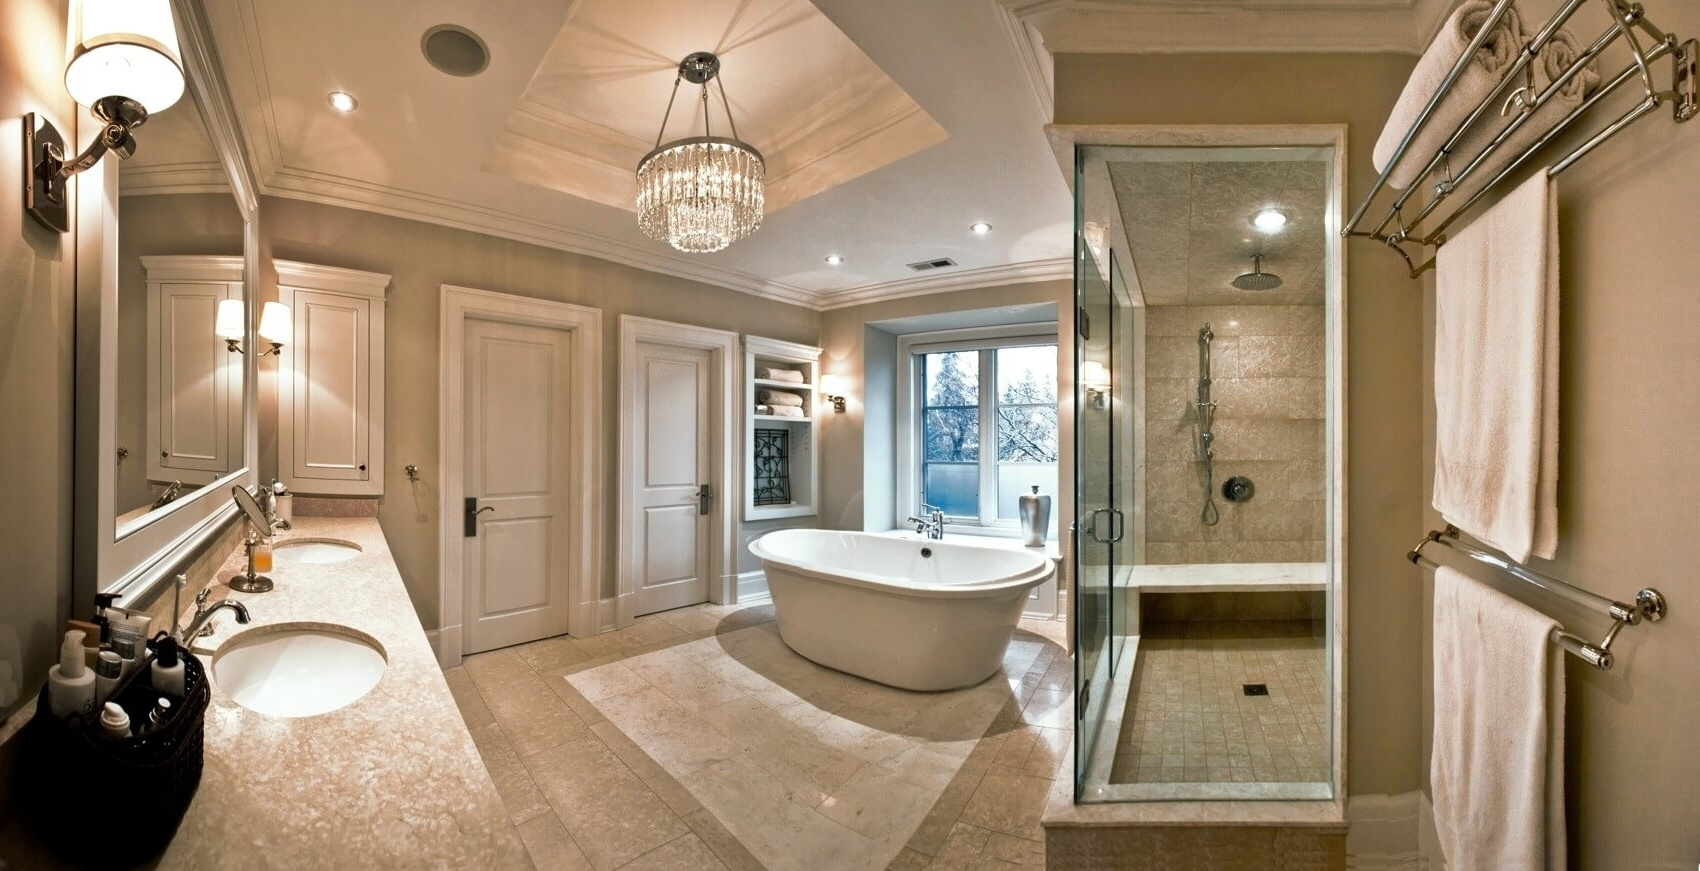 Crystal Bathroom Chandelier With Regard To Best And Newest Layered Lighting With Crystal Chandeliers – Doing It The Glow Way (View 14 of 15)